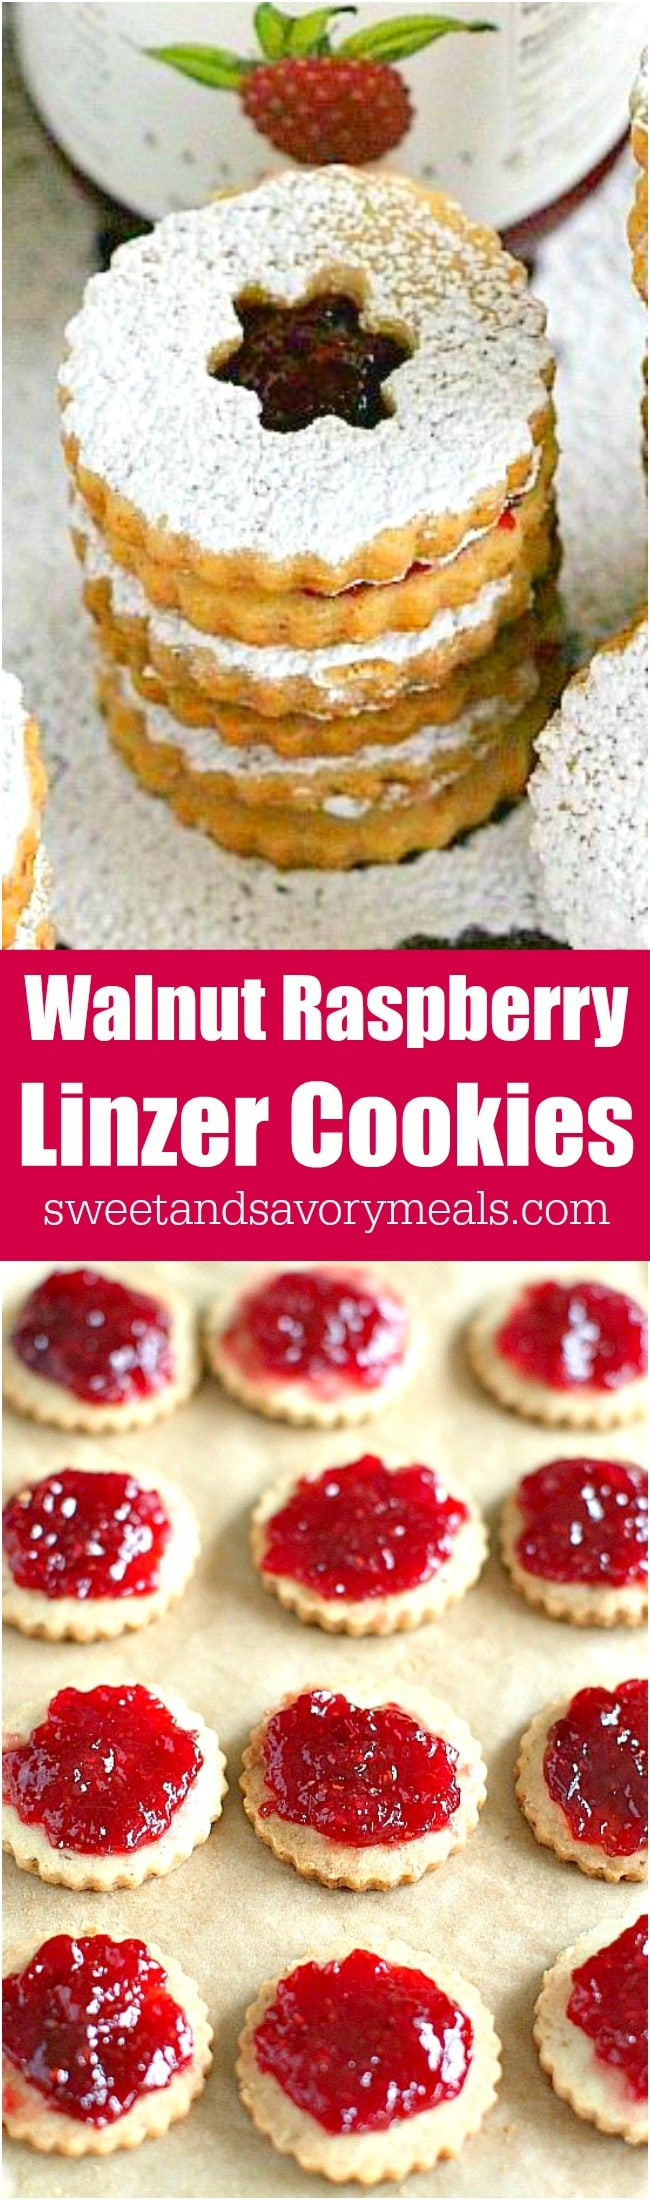 Walnut Raspberry Linzer Cookies are tender, buttery and sweet. They melt in your mouth and have a light nutty flavor and a delicious raspberry preserves middle.